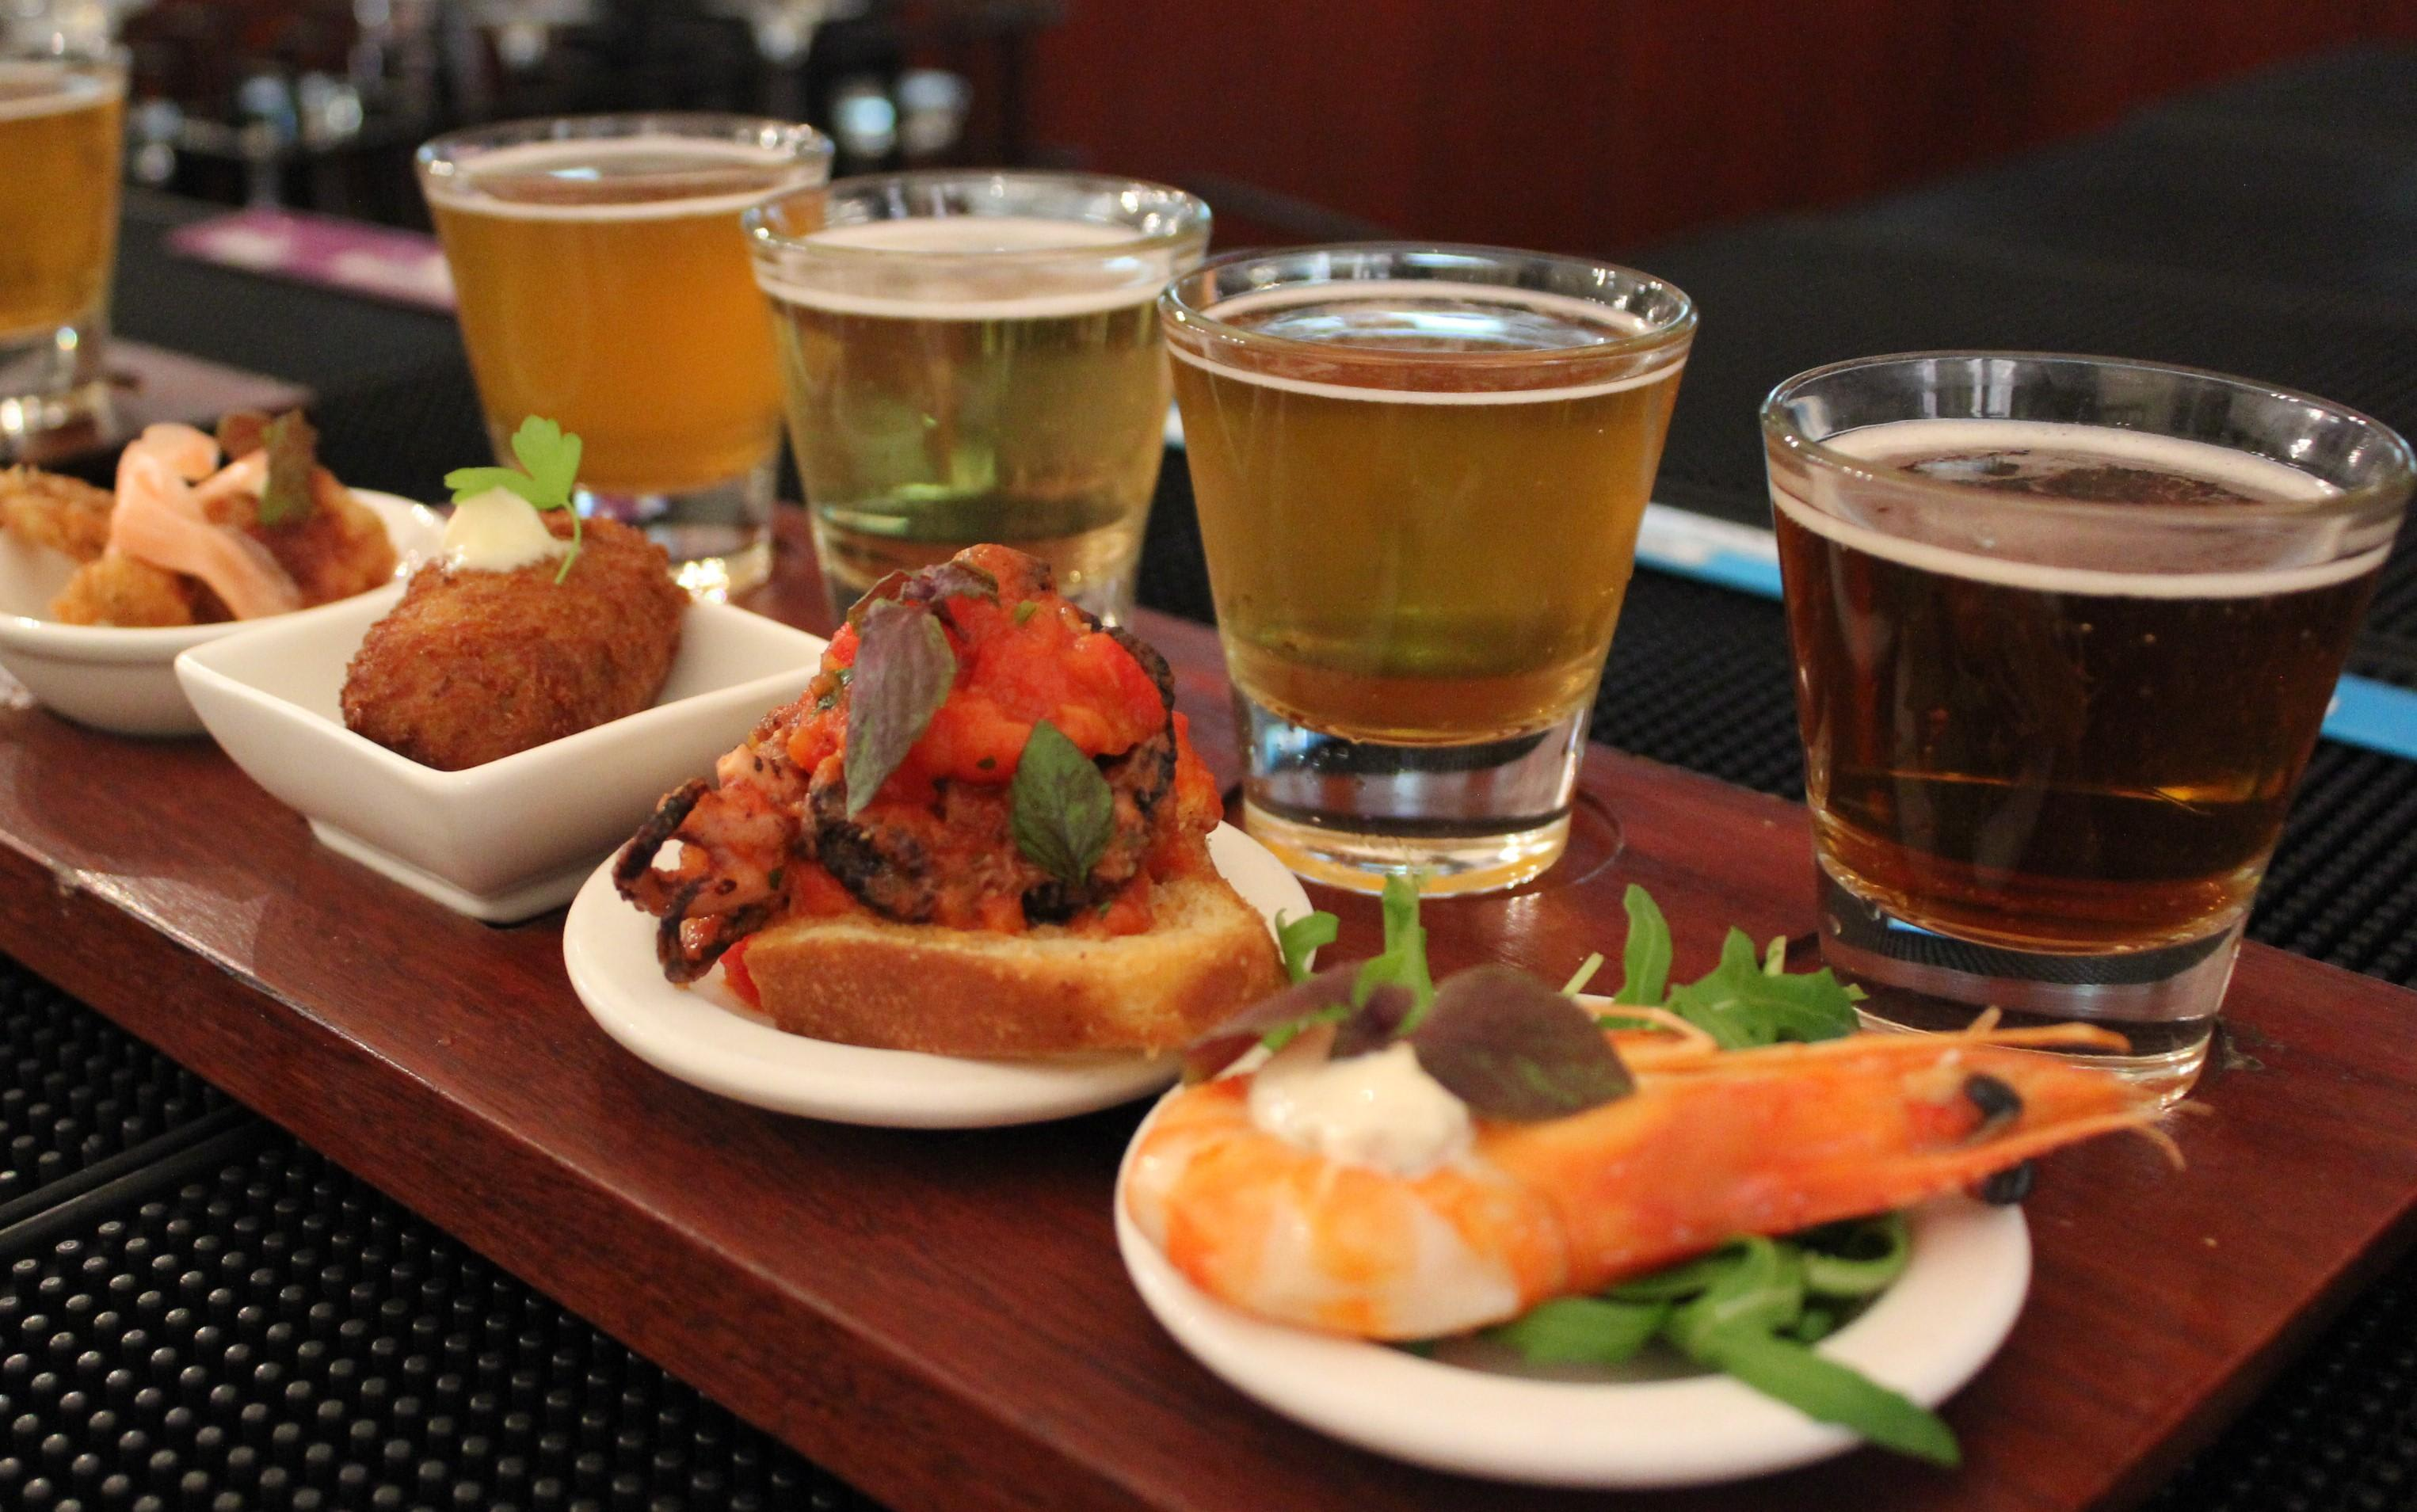 Beer and Canapes Tasting Board, Sydney - For 2